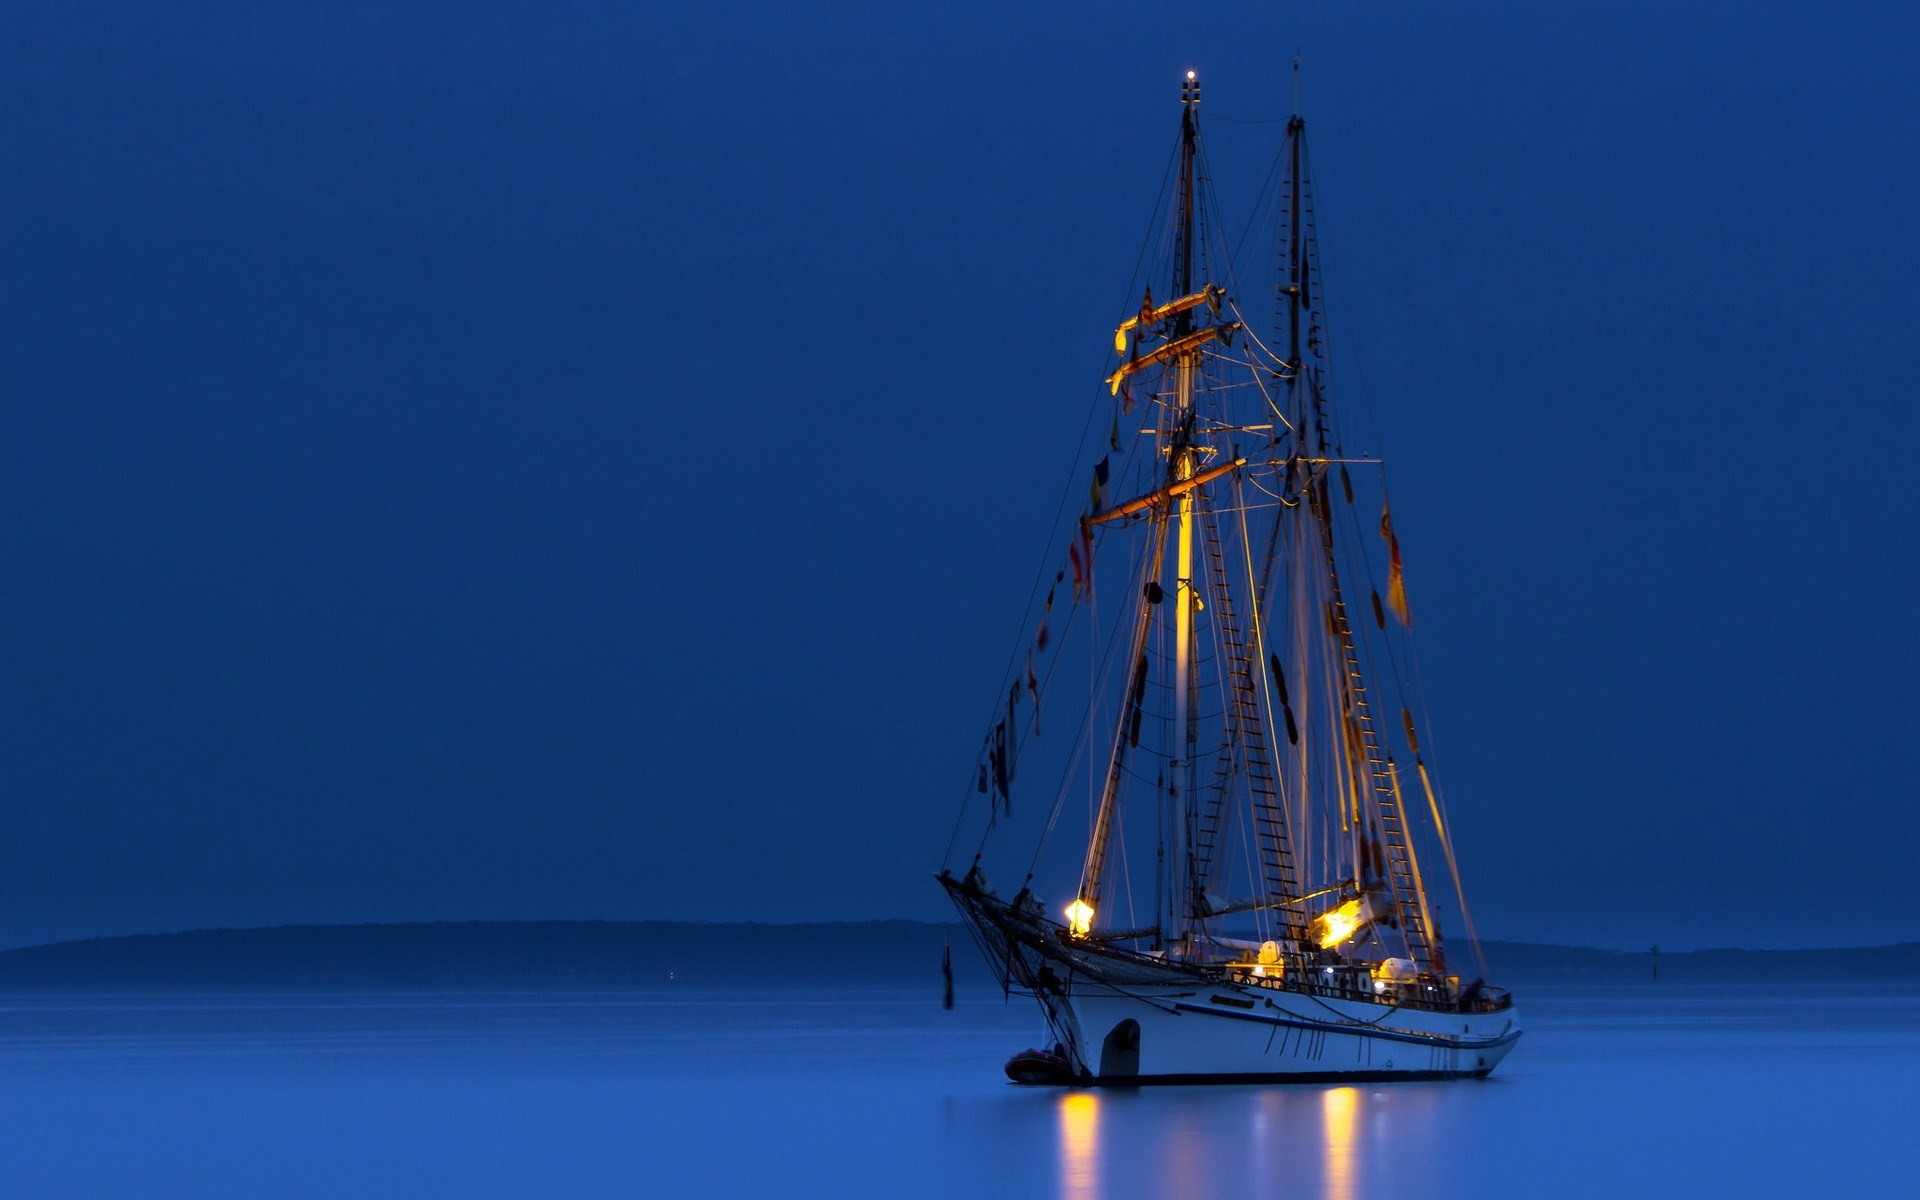 1920x1200 ... 97 Sailboat HD Wallpapers | Backgrounds - Wallpaper Abyss ...